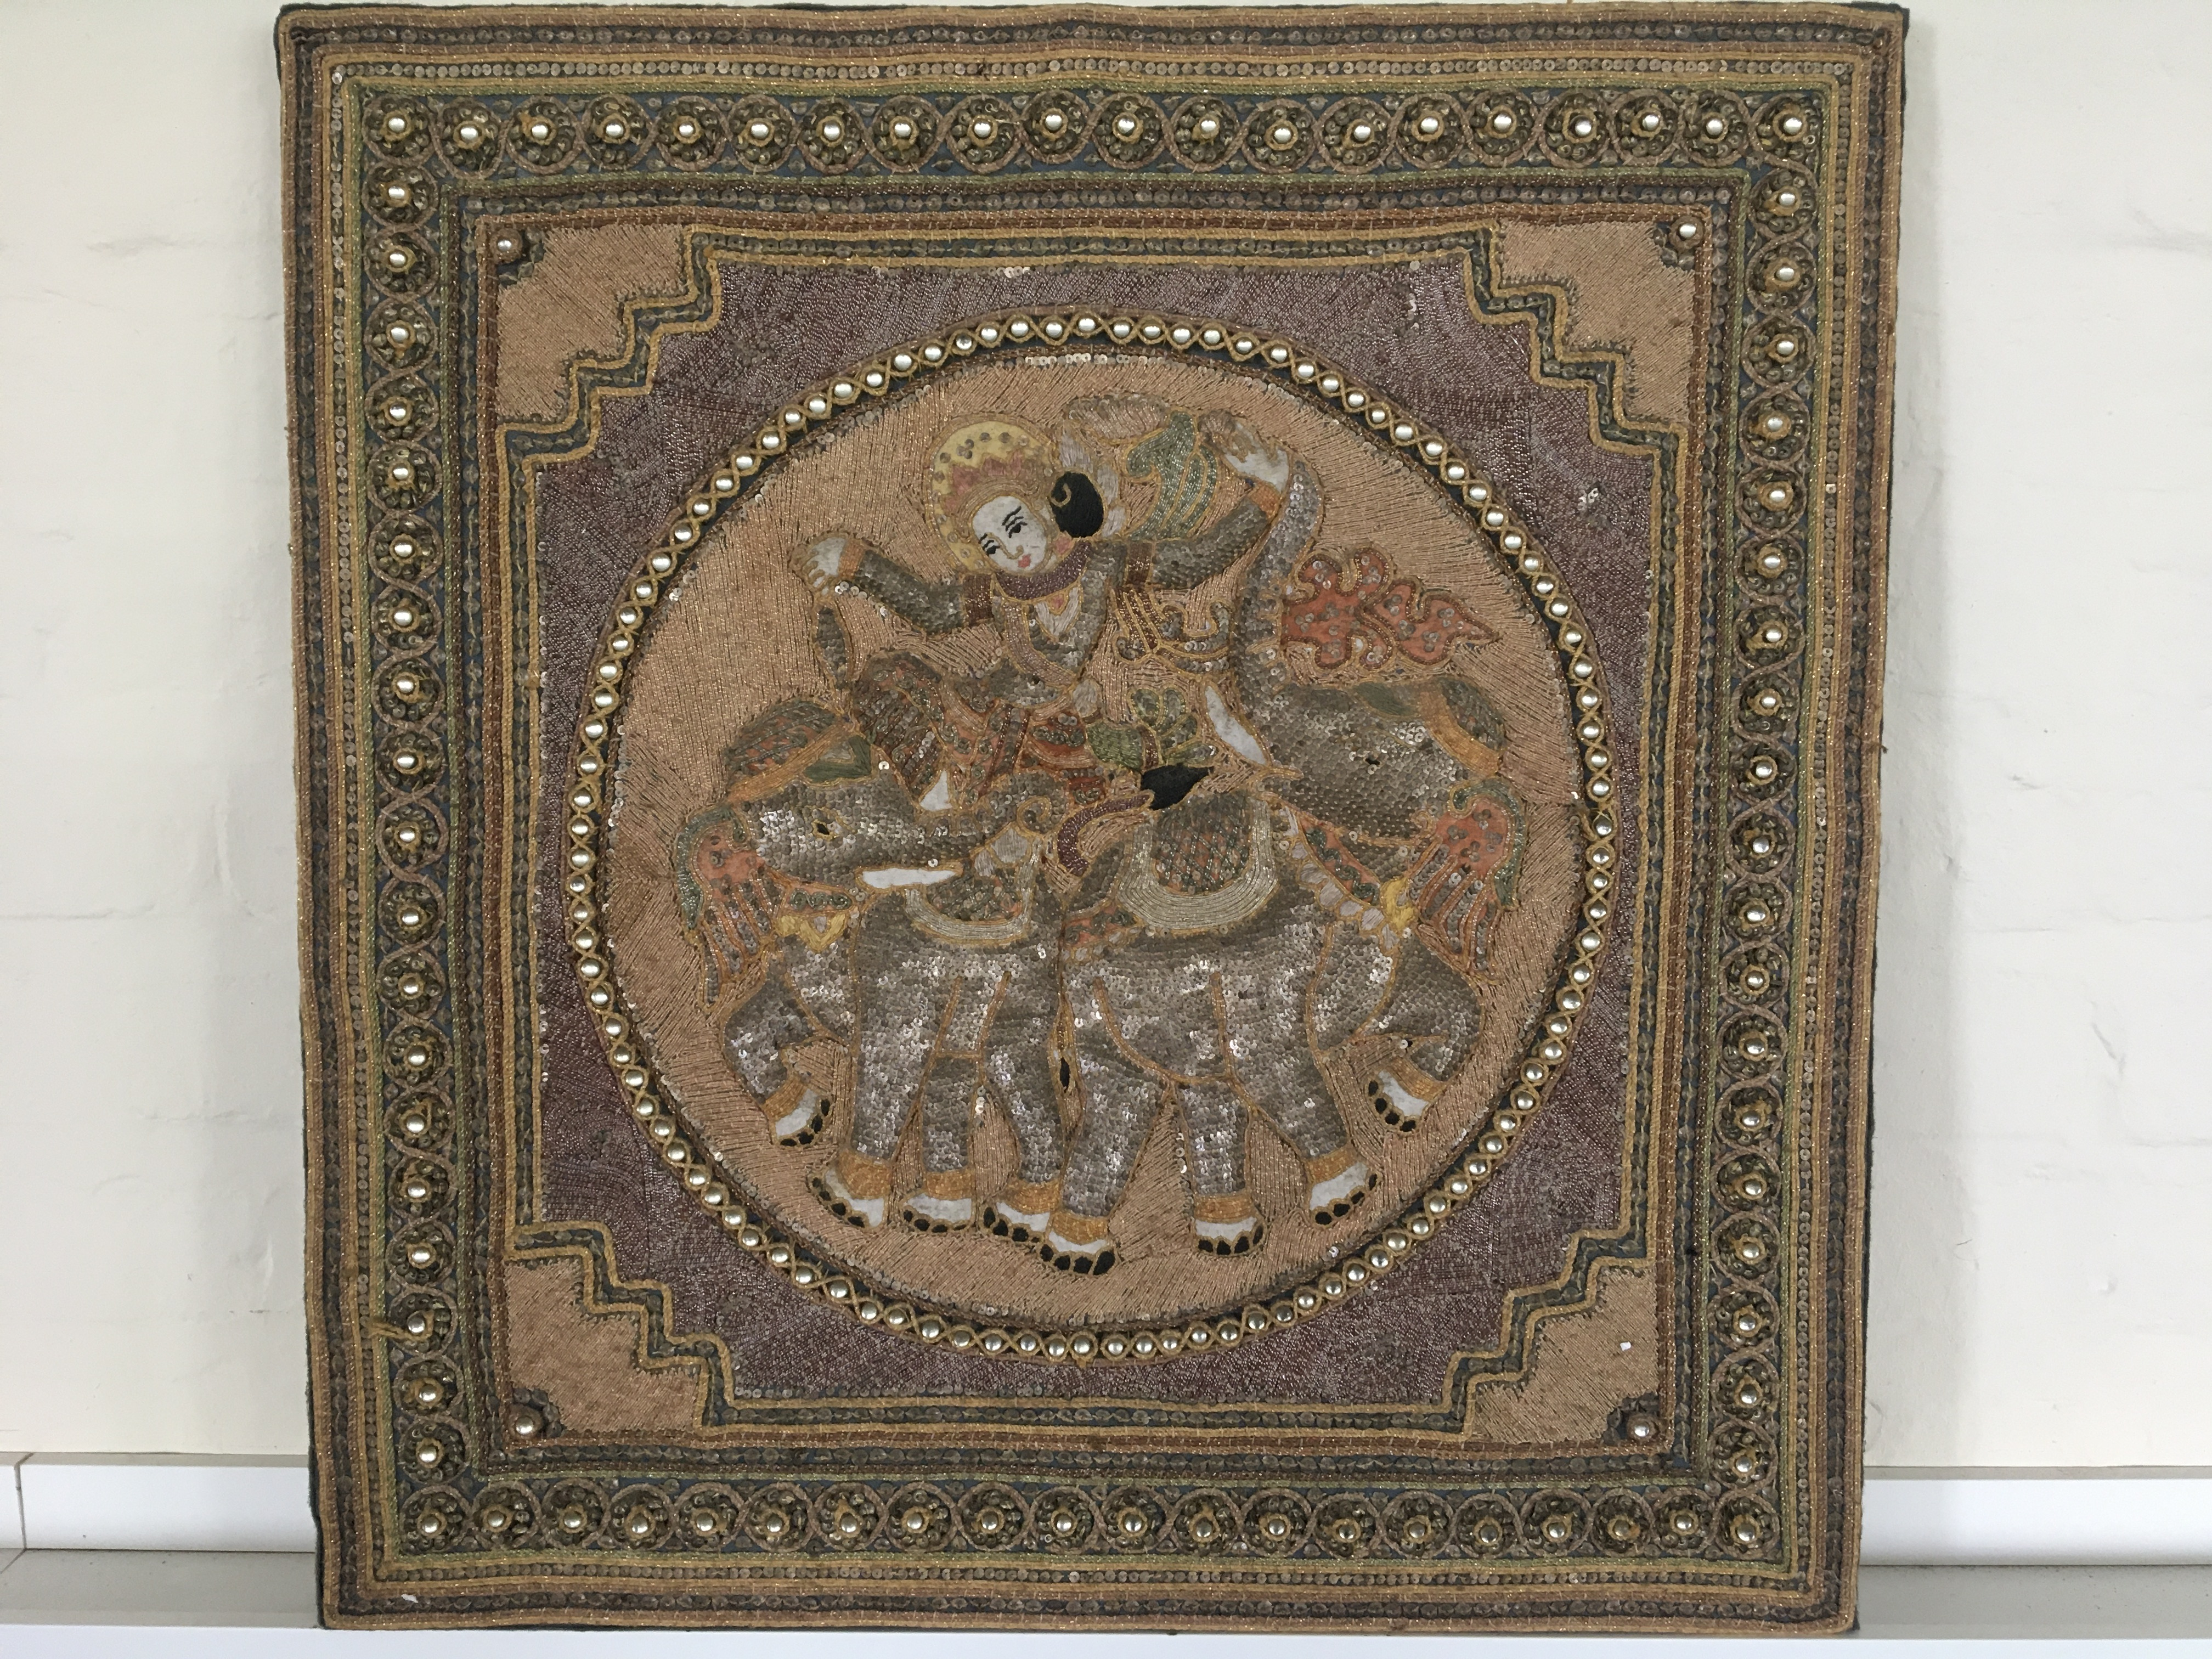 An Indian embroidered panel depicting female dancer on elephants with metal sequins and glass beads,